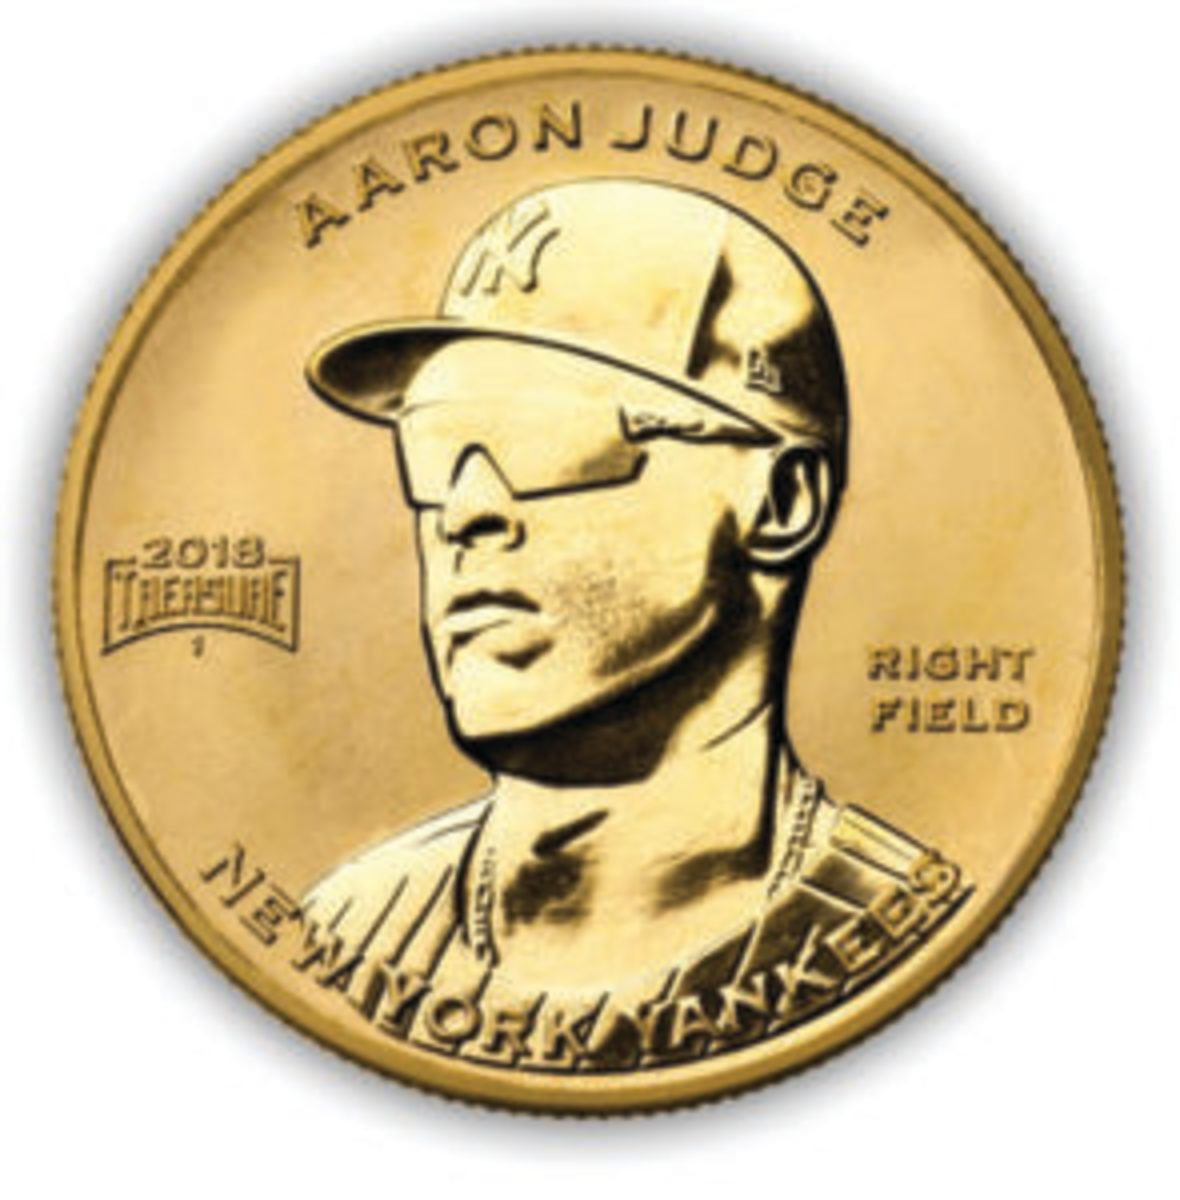 A rendering of the Baseball Treasure gold coin.